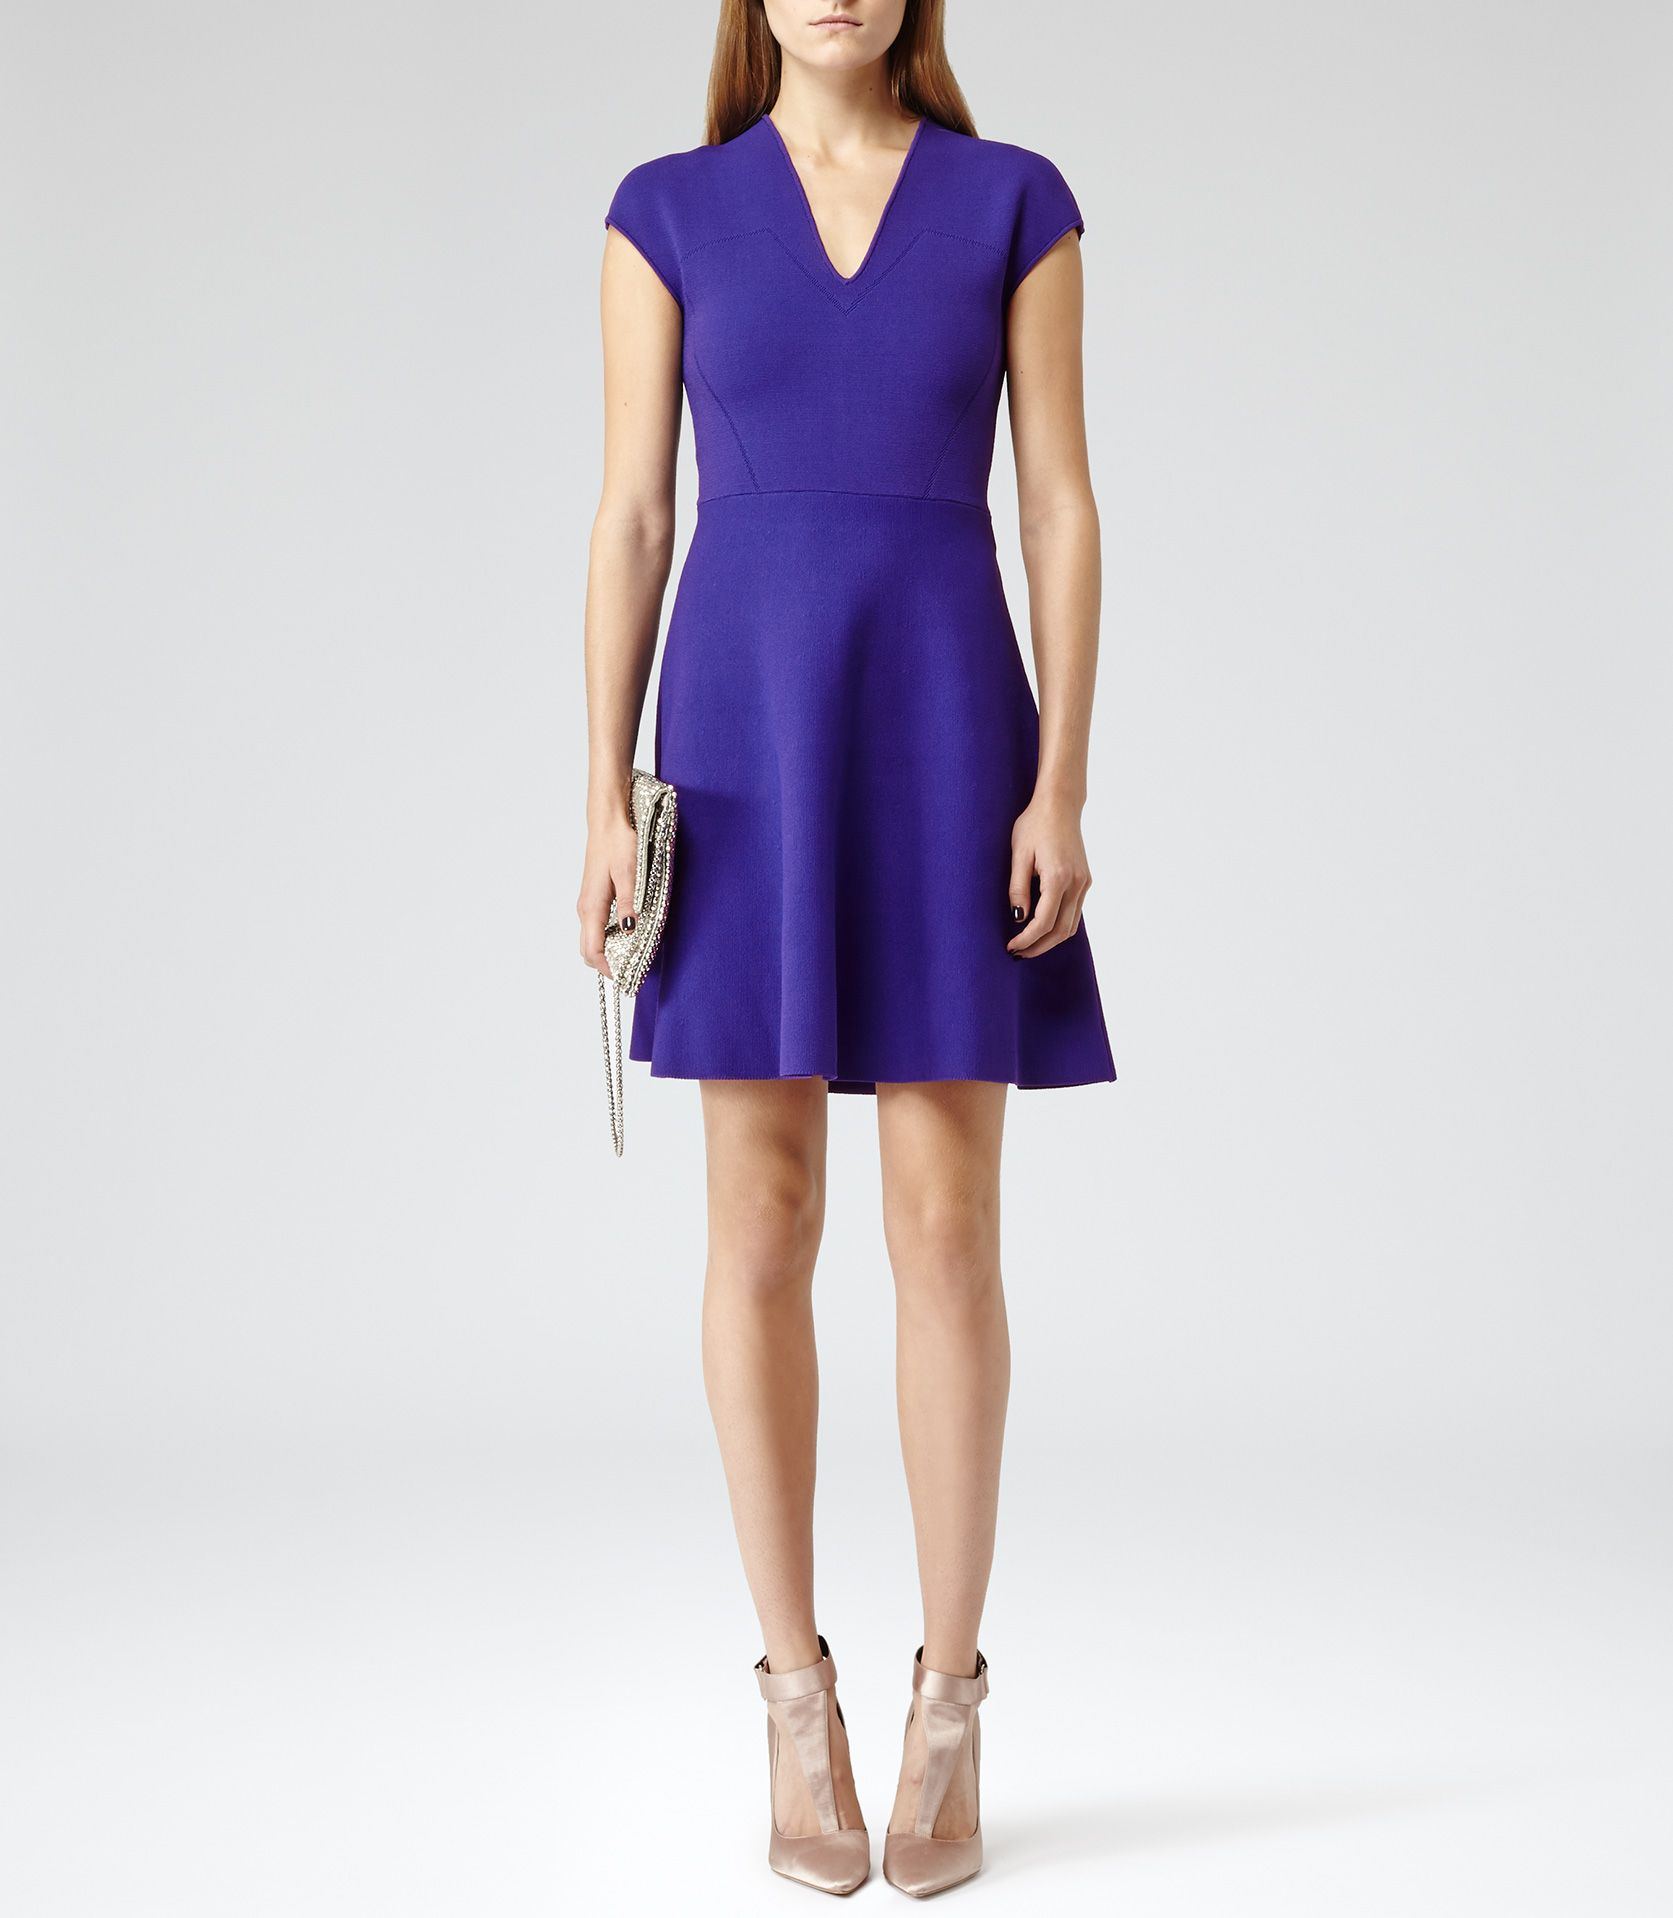 Blue Passion Fit And Flare Dress - Reiss   My Style   Pinterest